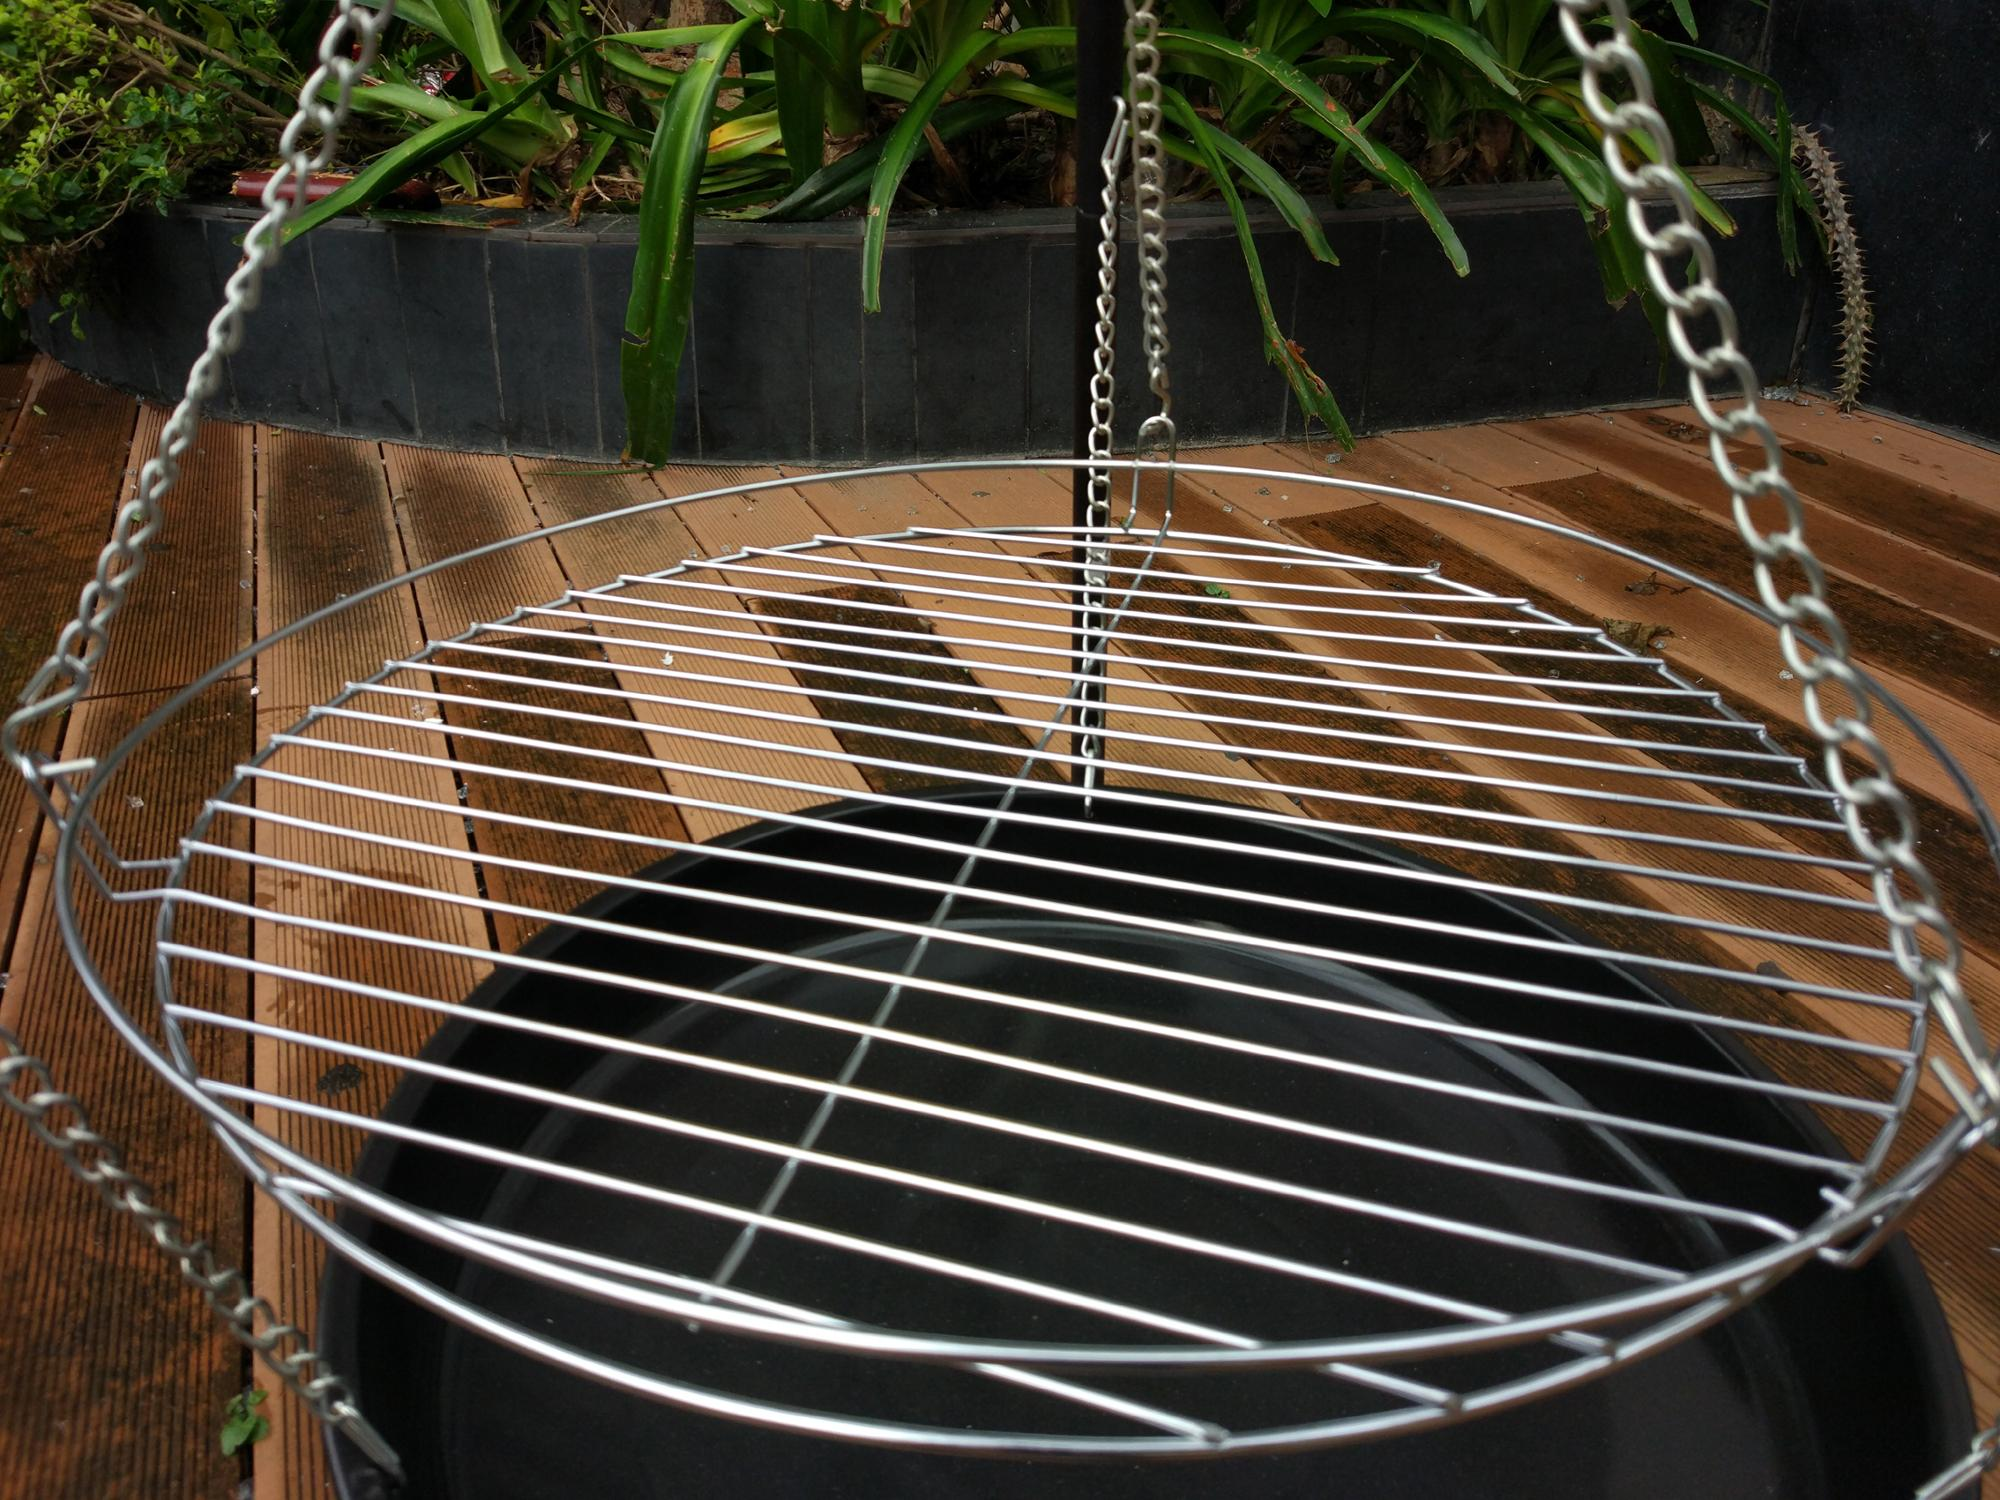 steel it acab grill grate broil rack char stainless ip up walmart com universal fix